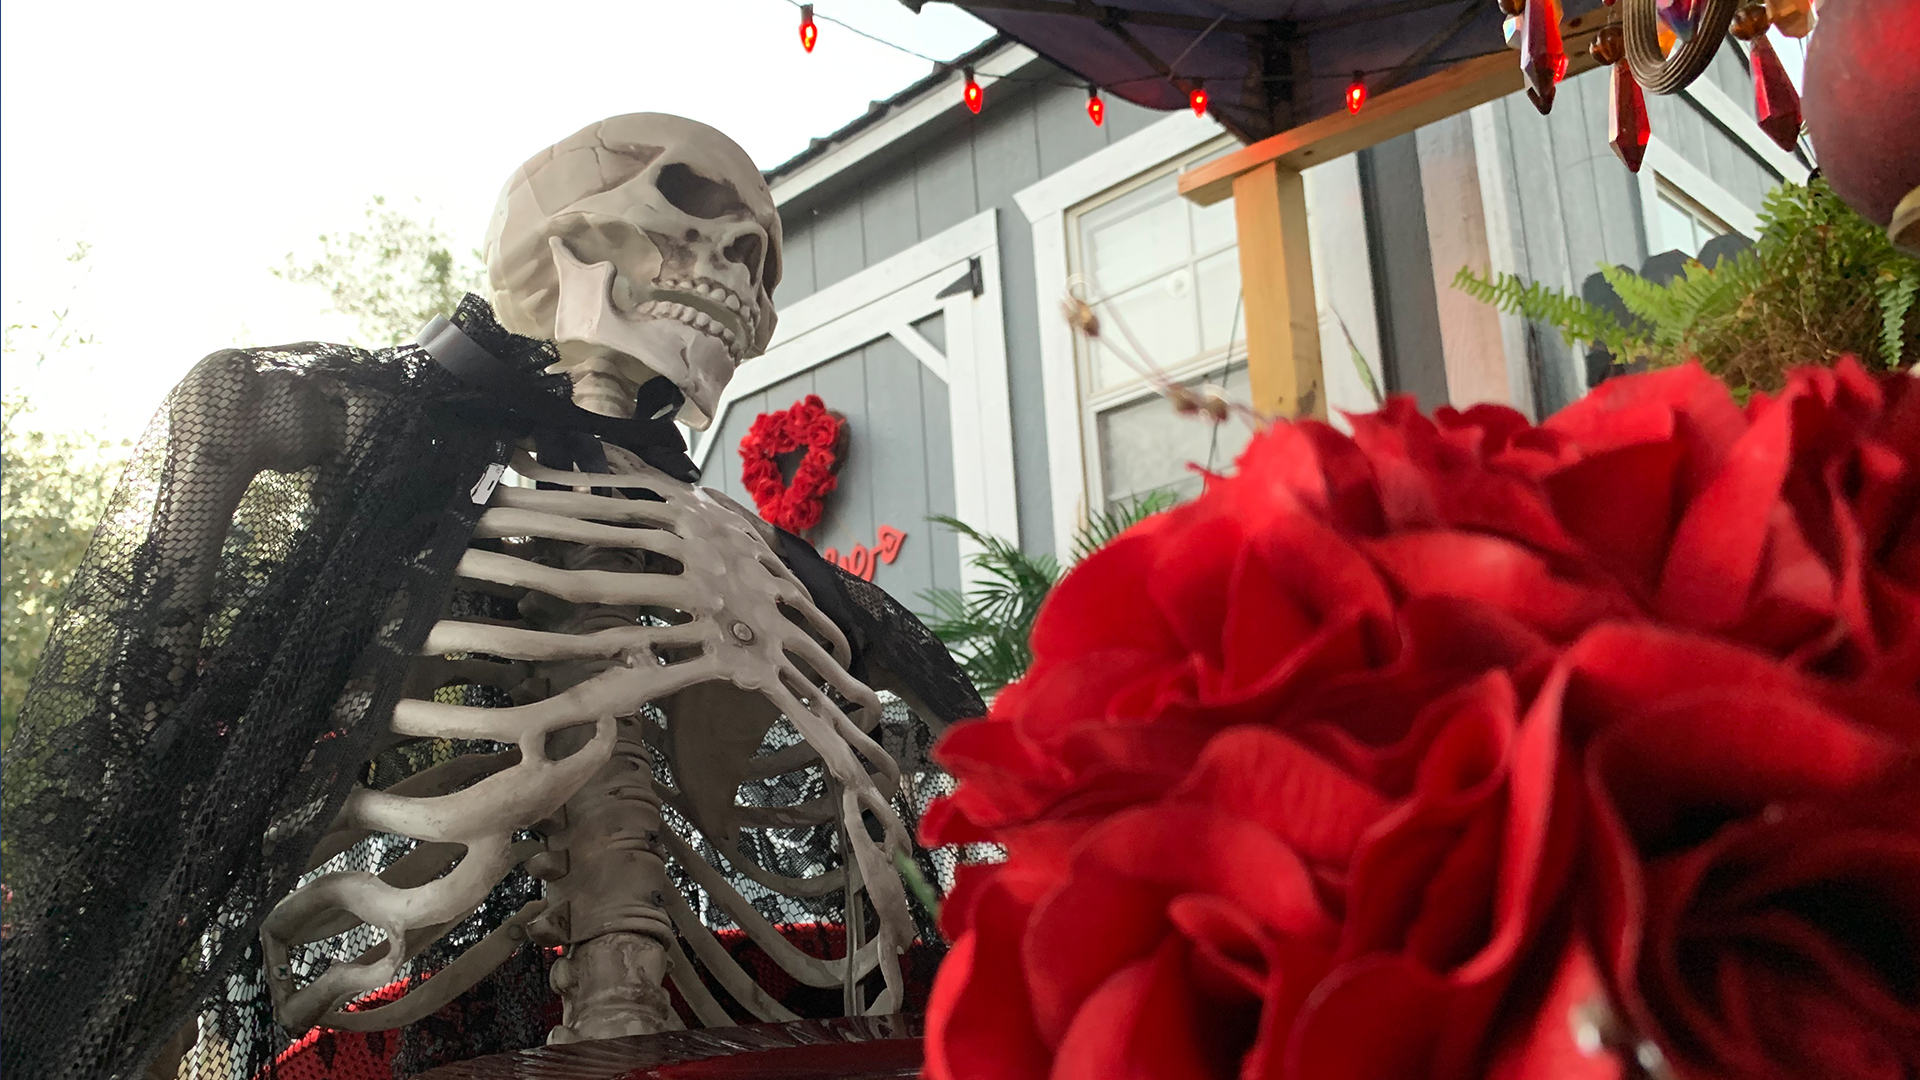 Wfla Halloween Meet 2020 Lover's Revenge' Valentine's Day haunted house opens in Plant City